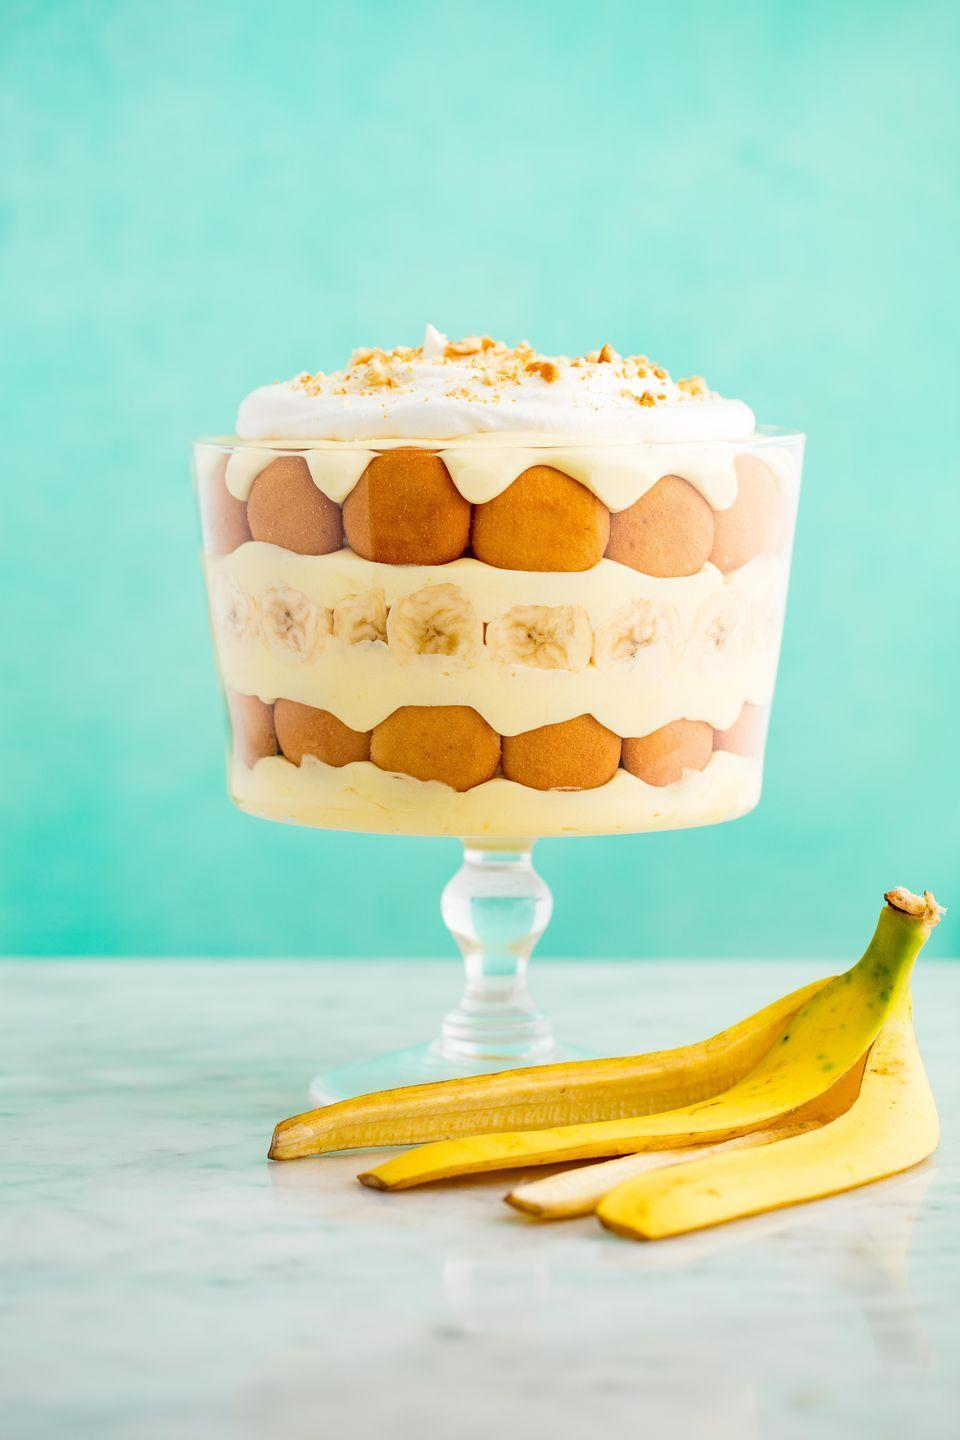 """<p>Party on the side, winter wonderland on top.</p><p>Get the recipe from <a href=""""https://www.delish.com/cooking/recipe-ideas/recipes/a51017/perfect-banana-pudding-recipe/"""" rel=""""nofollow noopener"""" target=""""_blank"""" data-ylk=""""slk:Delish"""" class=""""link rapid-noclick-resp"""">Delish</a>.</p>"""